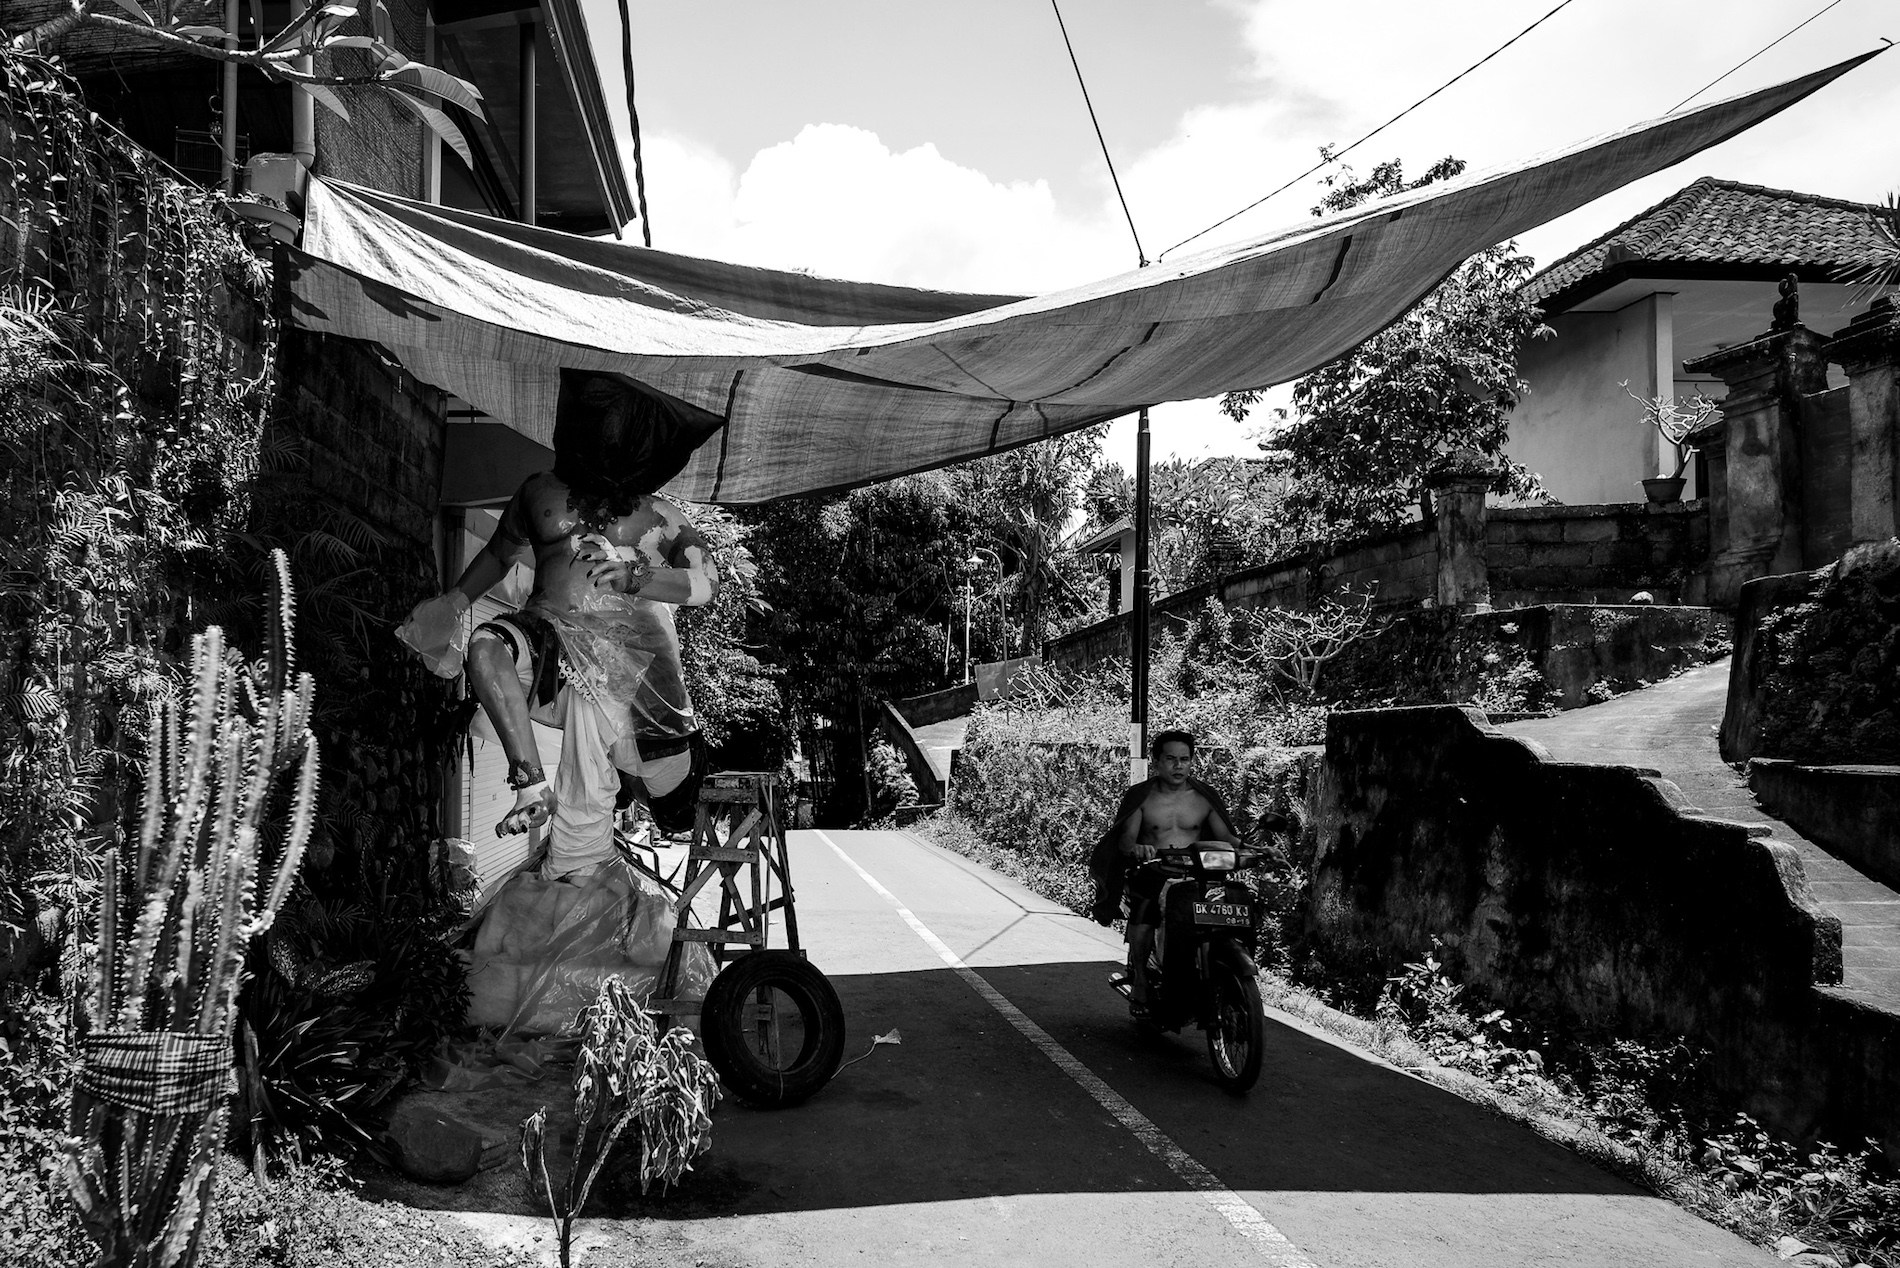 Ogoh-ogoh in the making - Bali Street Photographer